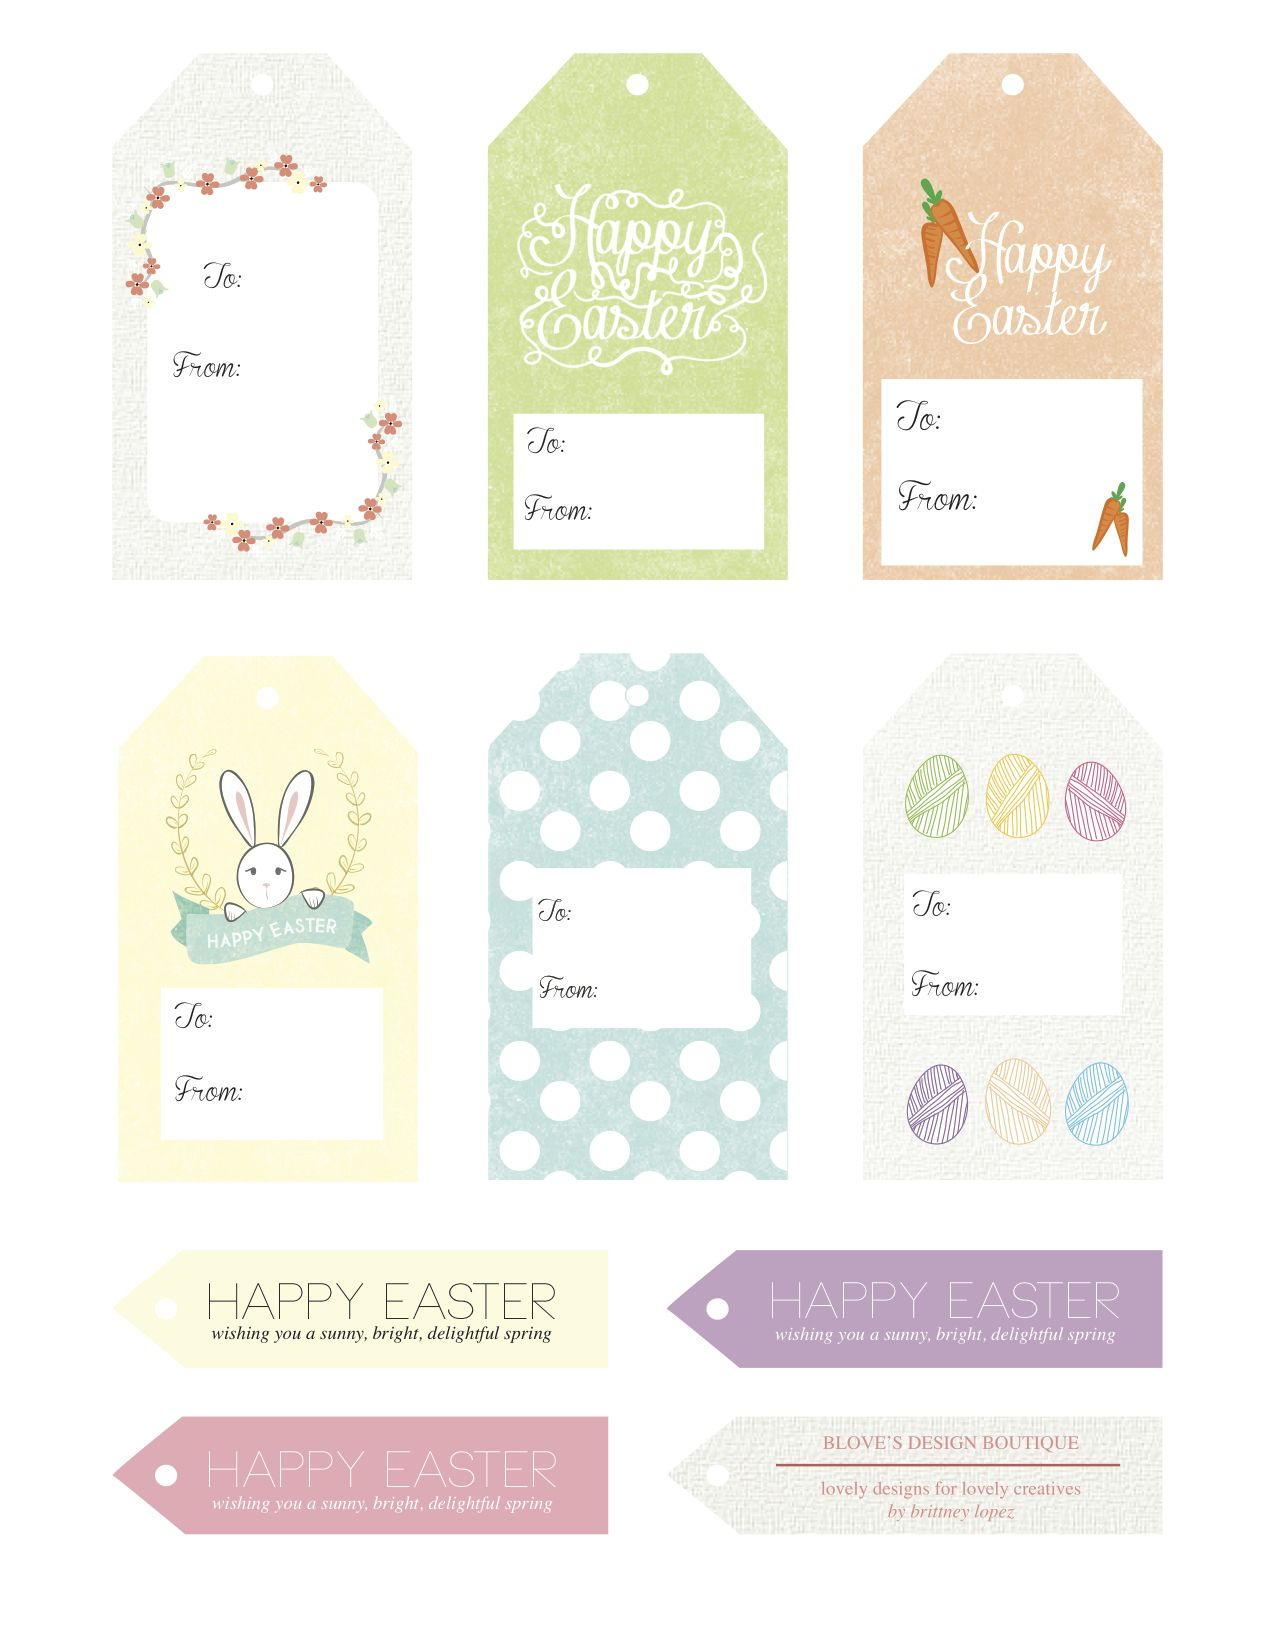 Free Easter Printables! Adorable Gift Tags. | Diy | Pinterest - Free Printable Easter Tags